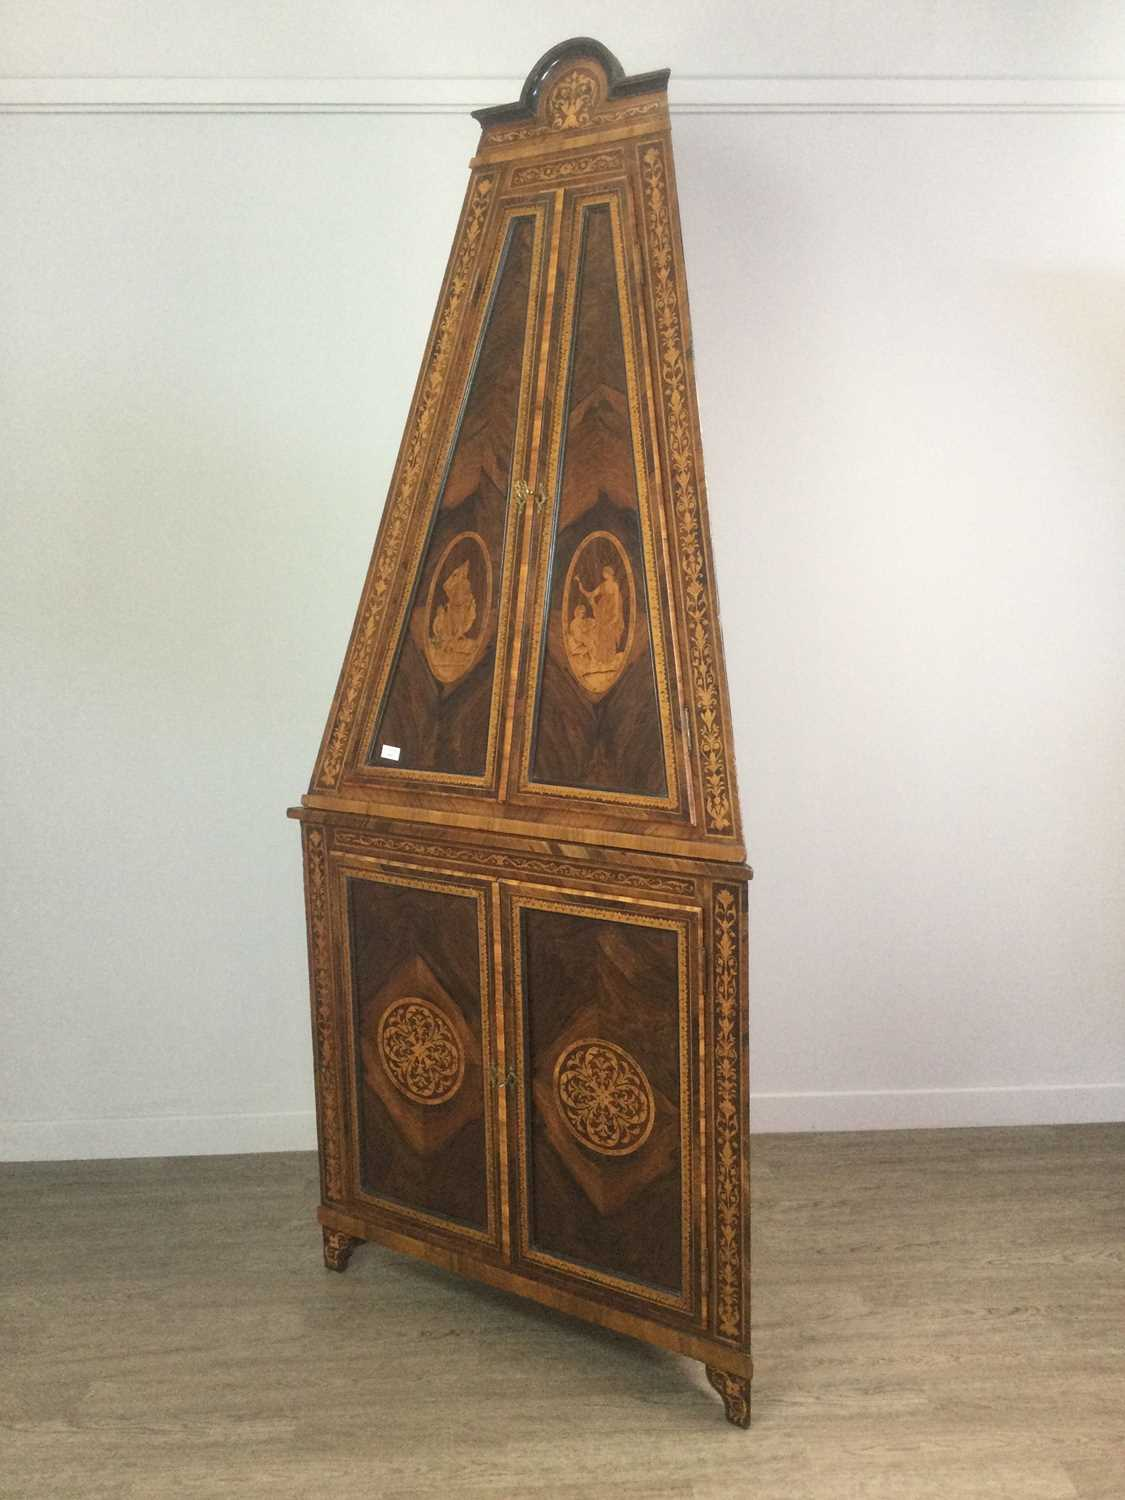 Lot 1424 - A 19TH CENTURY ITALIAN ROSEWOOD AND MARQUETRY TWO STAGE CORNER CABNET